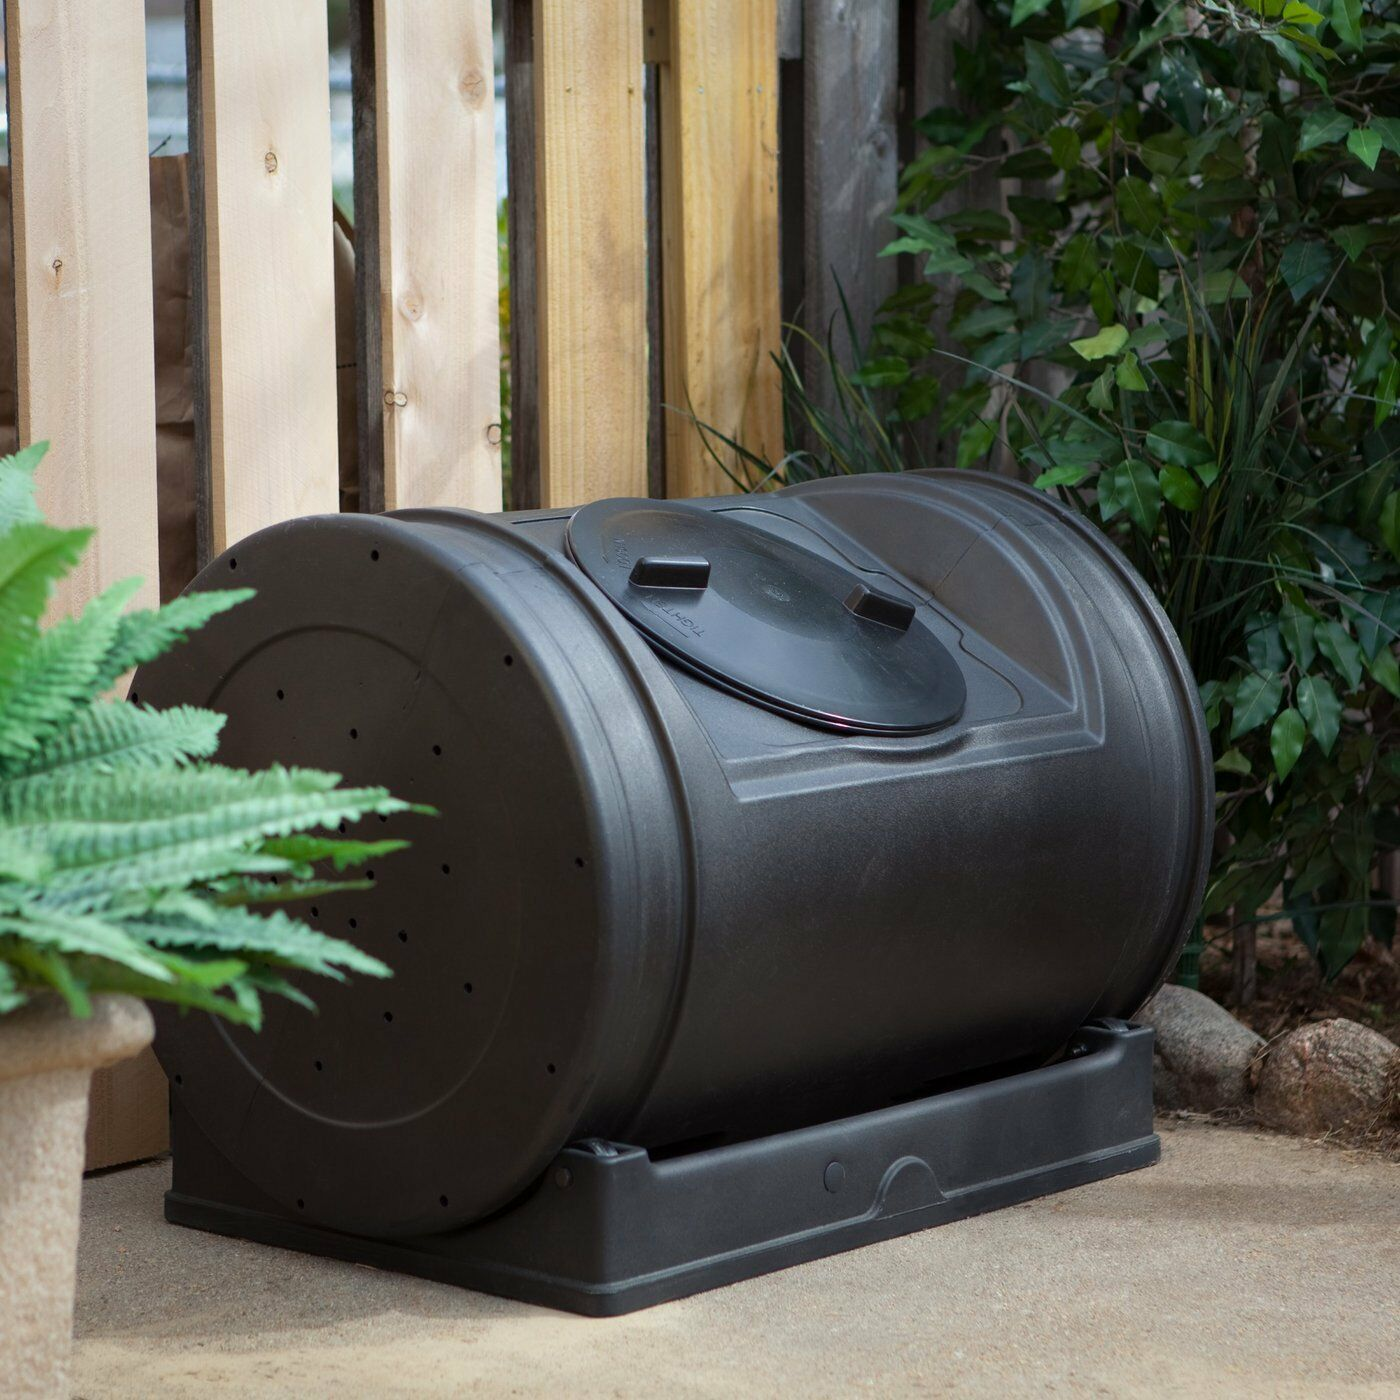 Diy Compost Bin Apartment: Compost Tumbler Garden Waste Bin Grass Trash Barrel